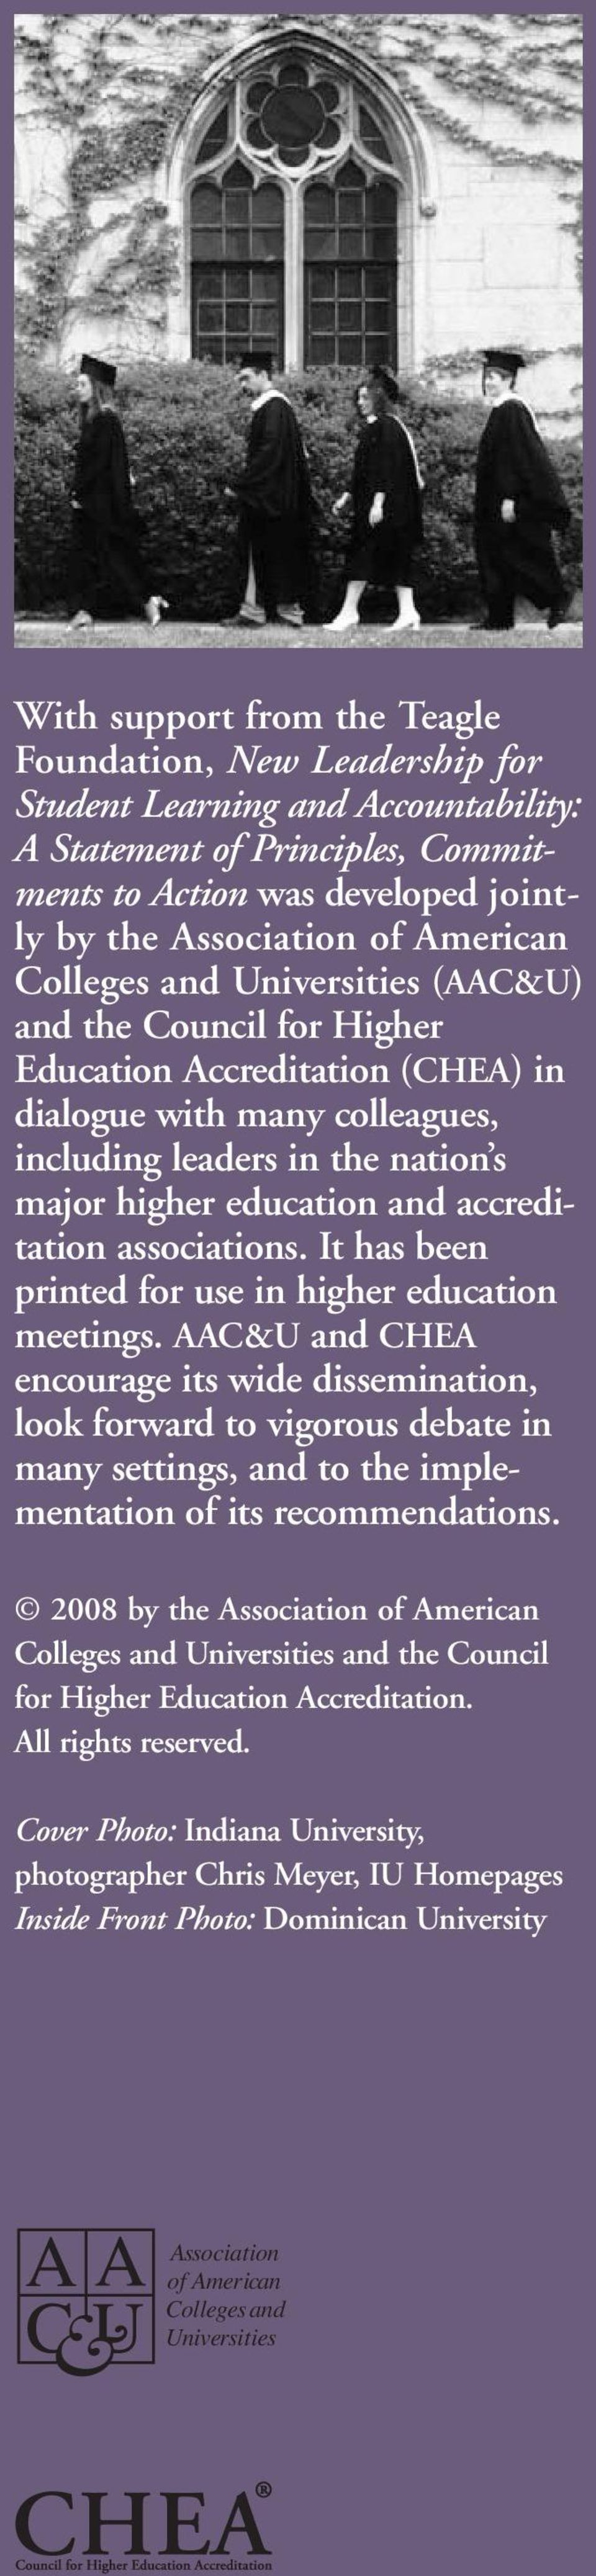 accreditation associations. It has been printed for use in higher education meetings.